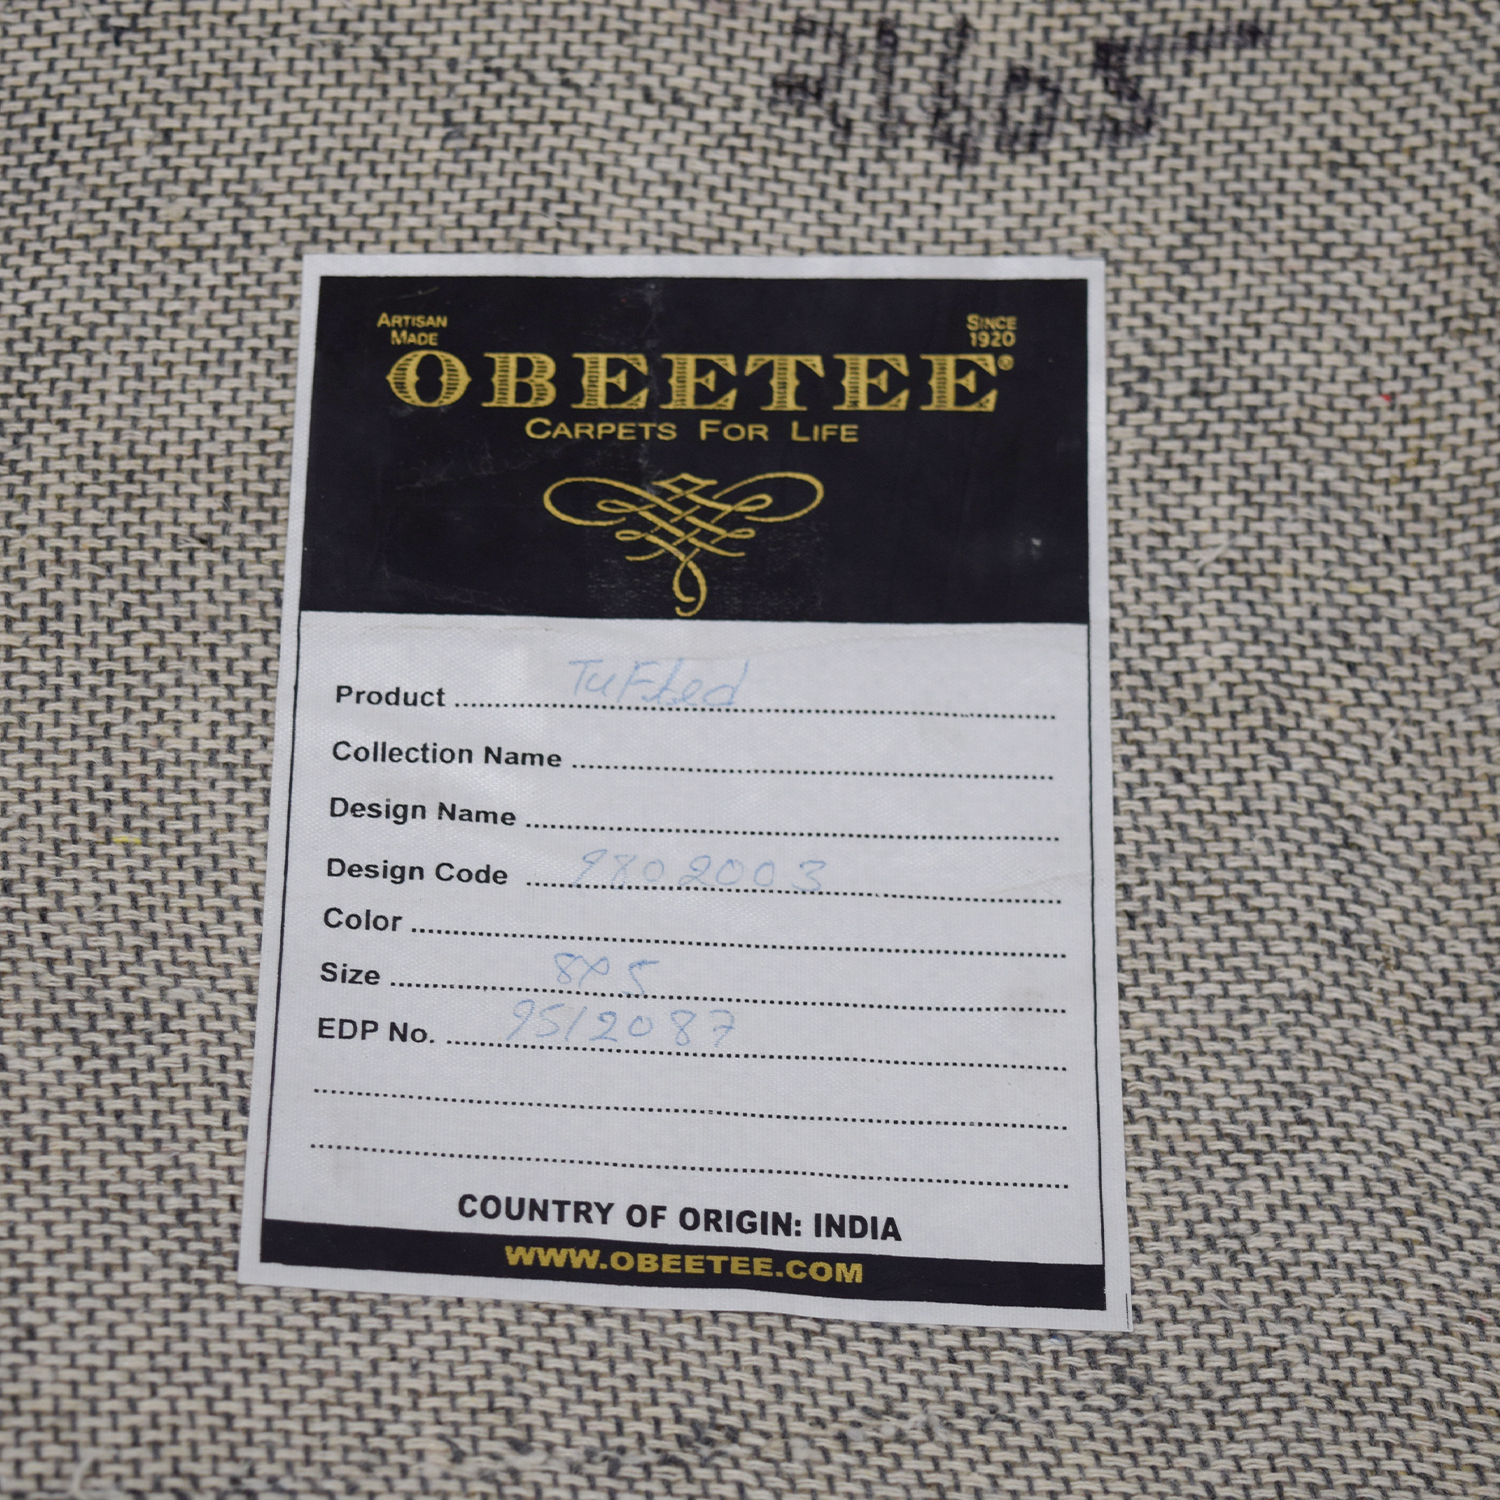 Obeetee Obeetee White and Light Gray Rug dimensions